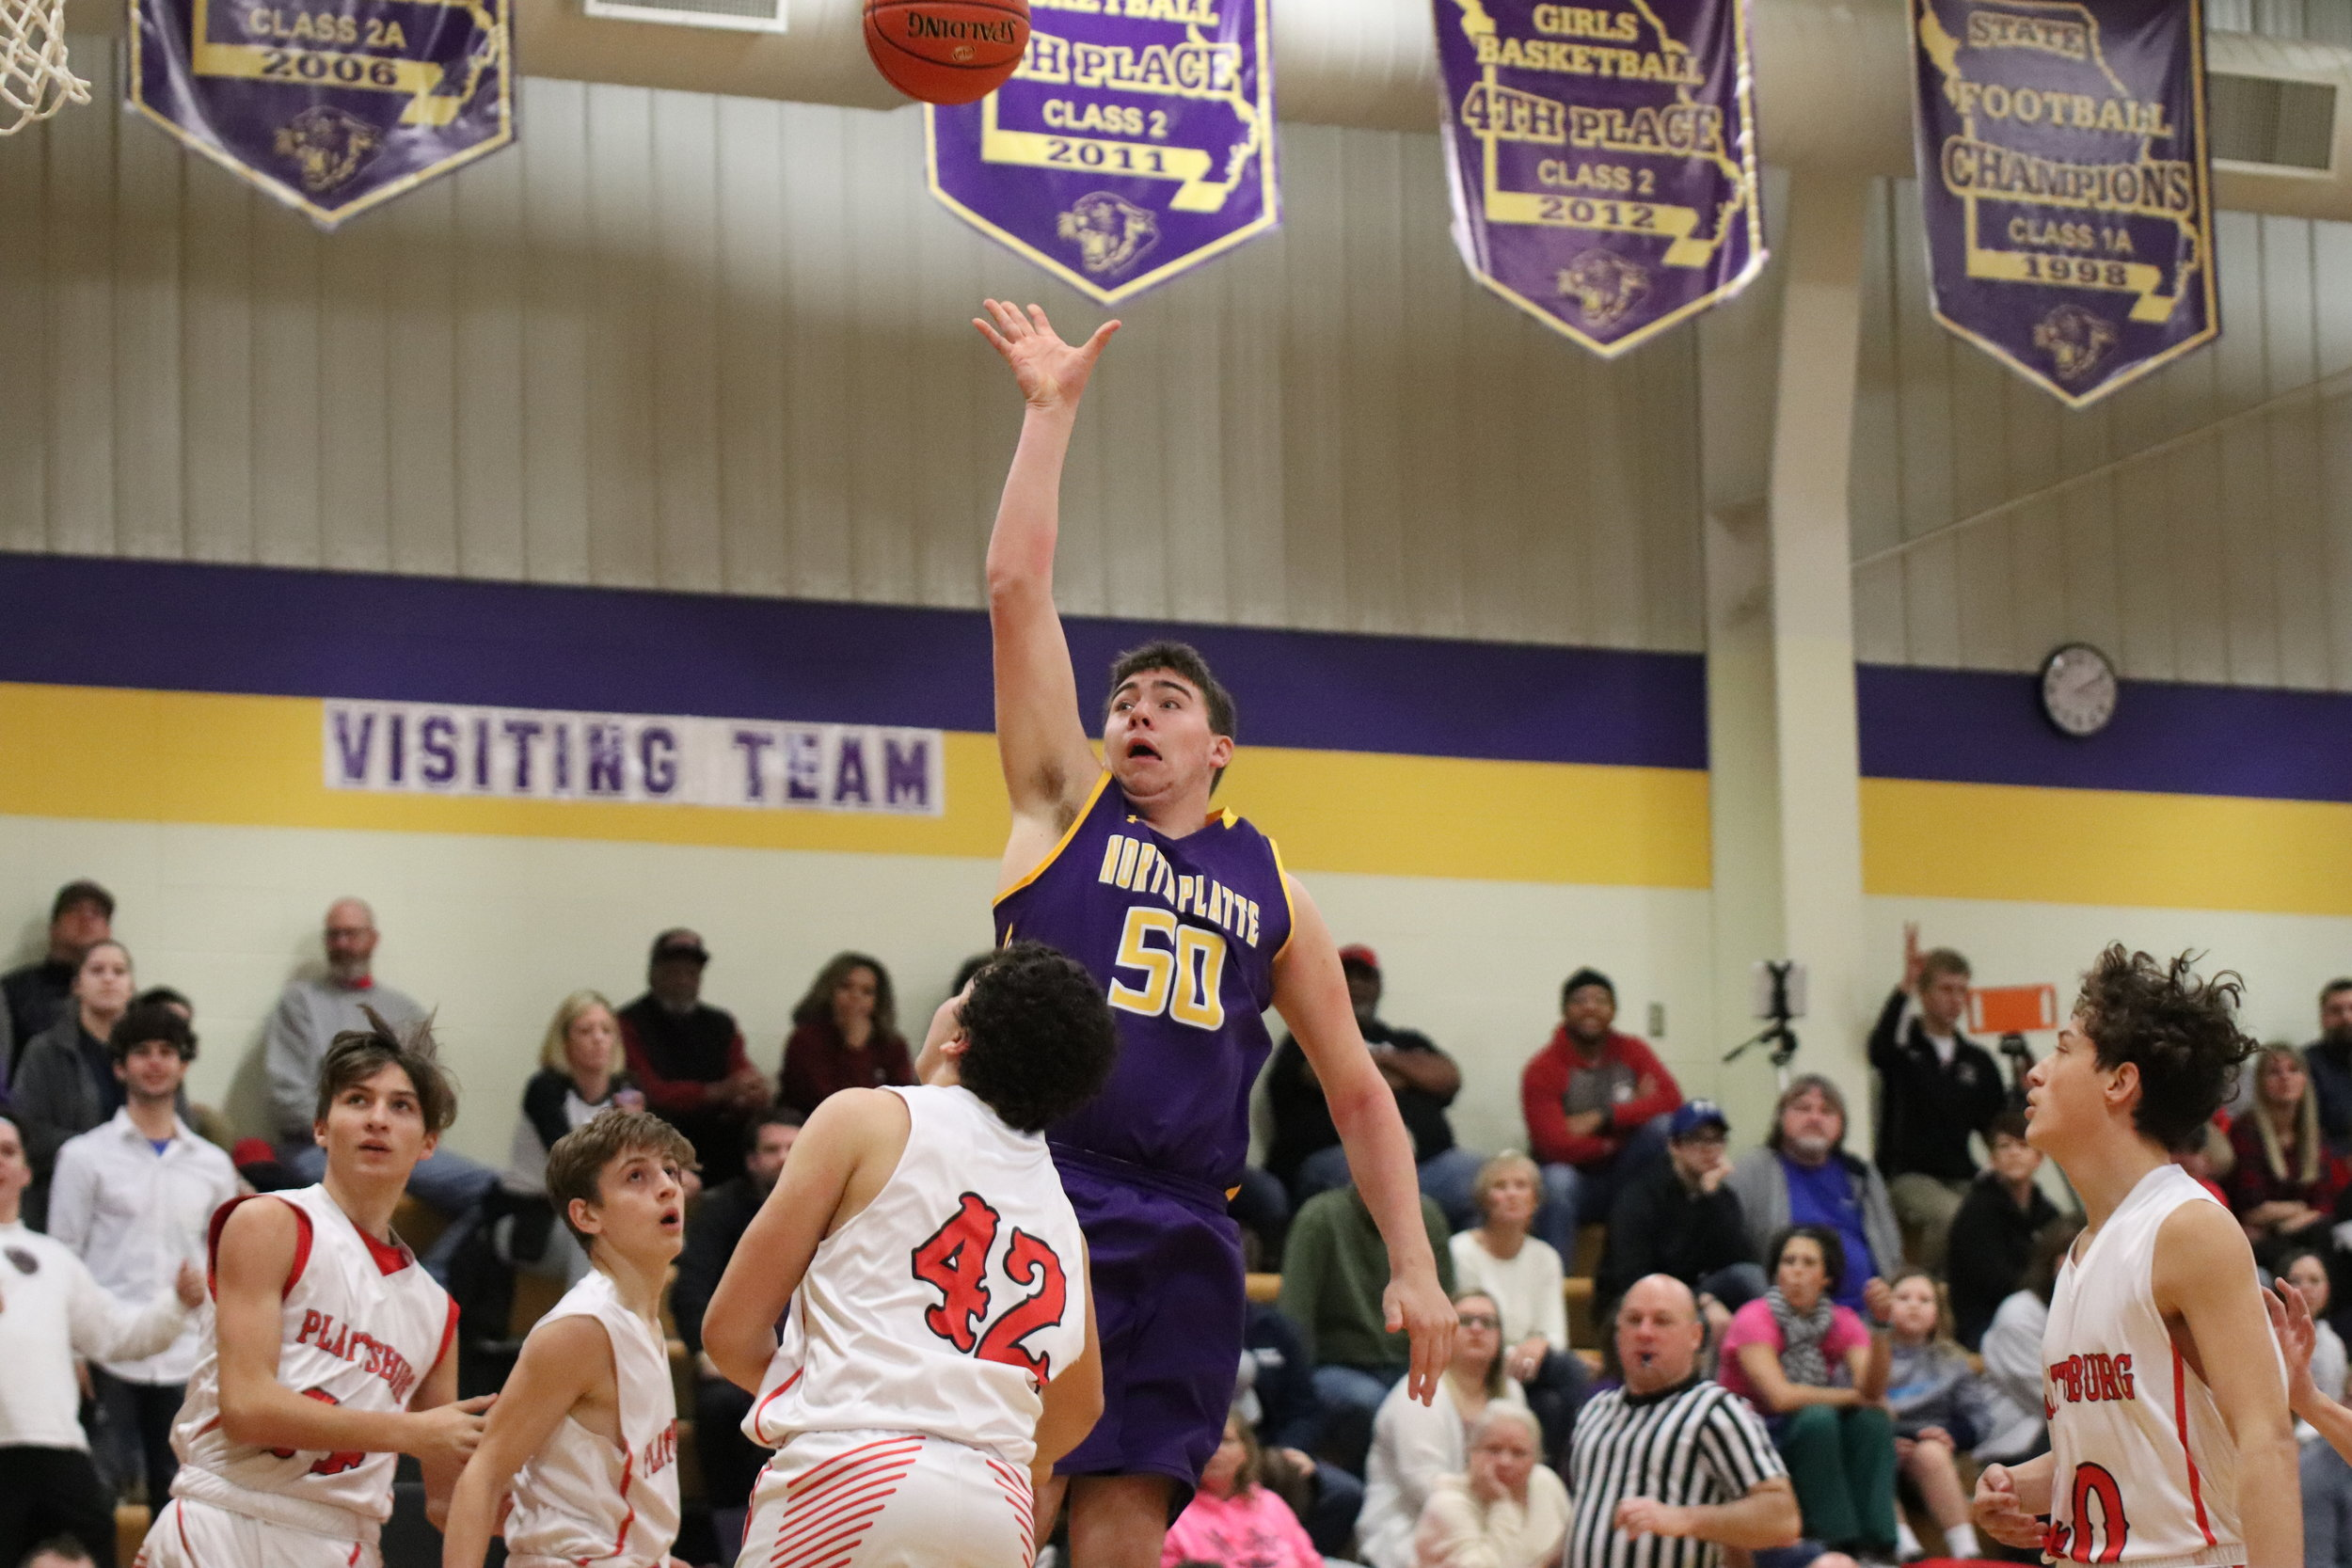 CODY THORN/Citizen photo  North Platte junior Cam Leupold shoots a jumper over Plattsburg's Cordell Fish during the Class 2 District 15 championship game on Saturday, Feb. 23 at North Platte High School in Dearborn.